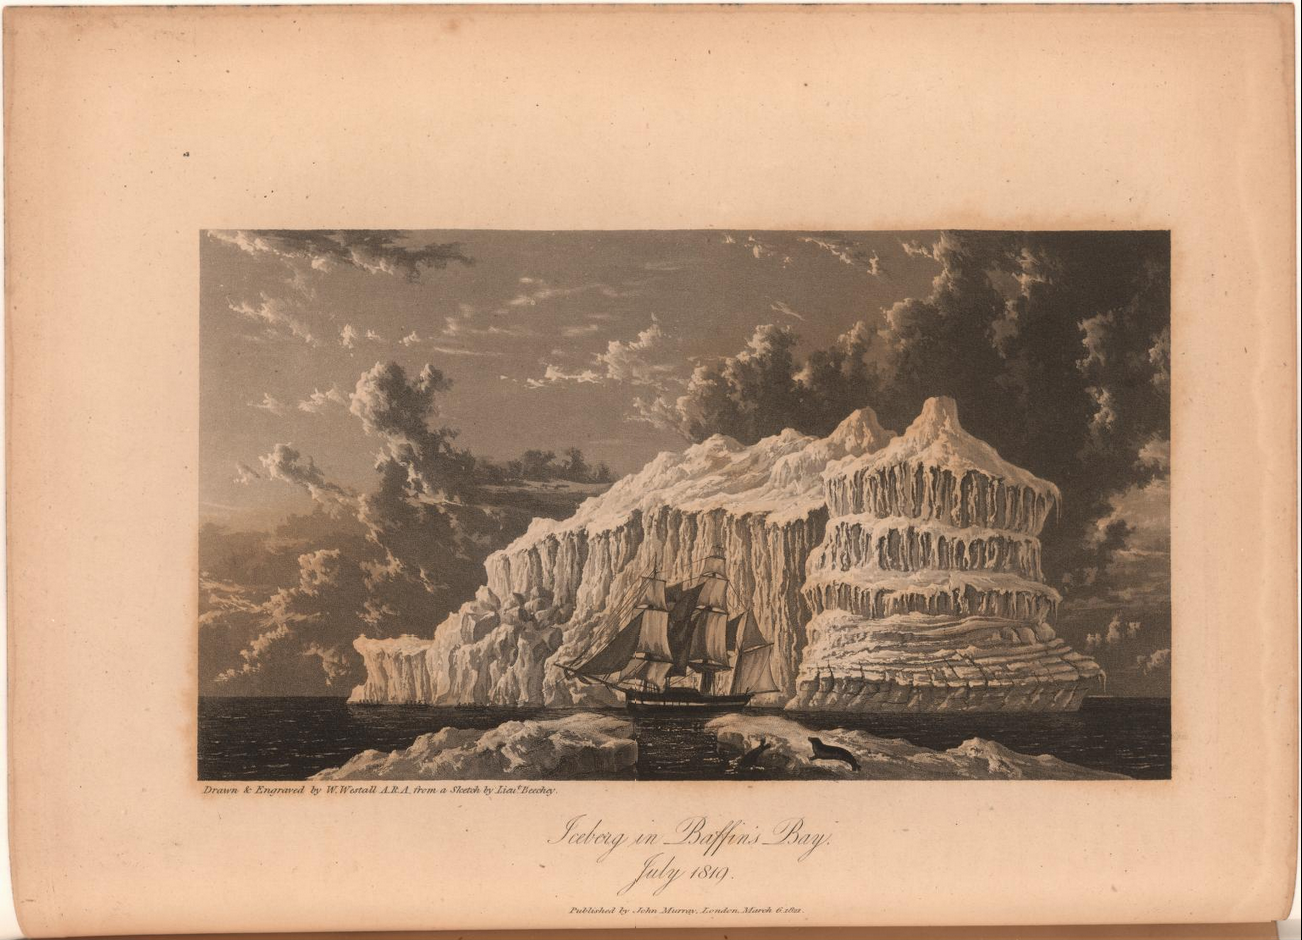 From the journal of a voyage for the discovery of a Northwest Passage under the orders of William Edward Parry.  Image date: 1821.